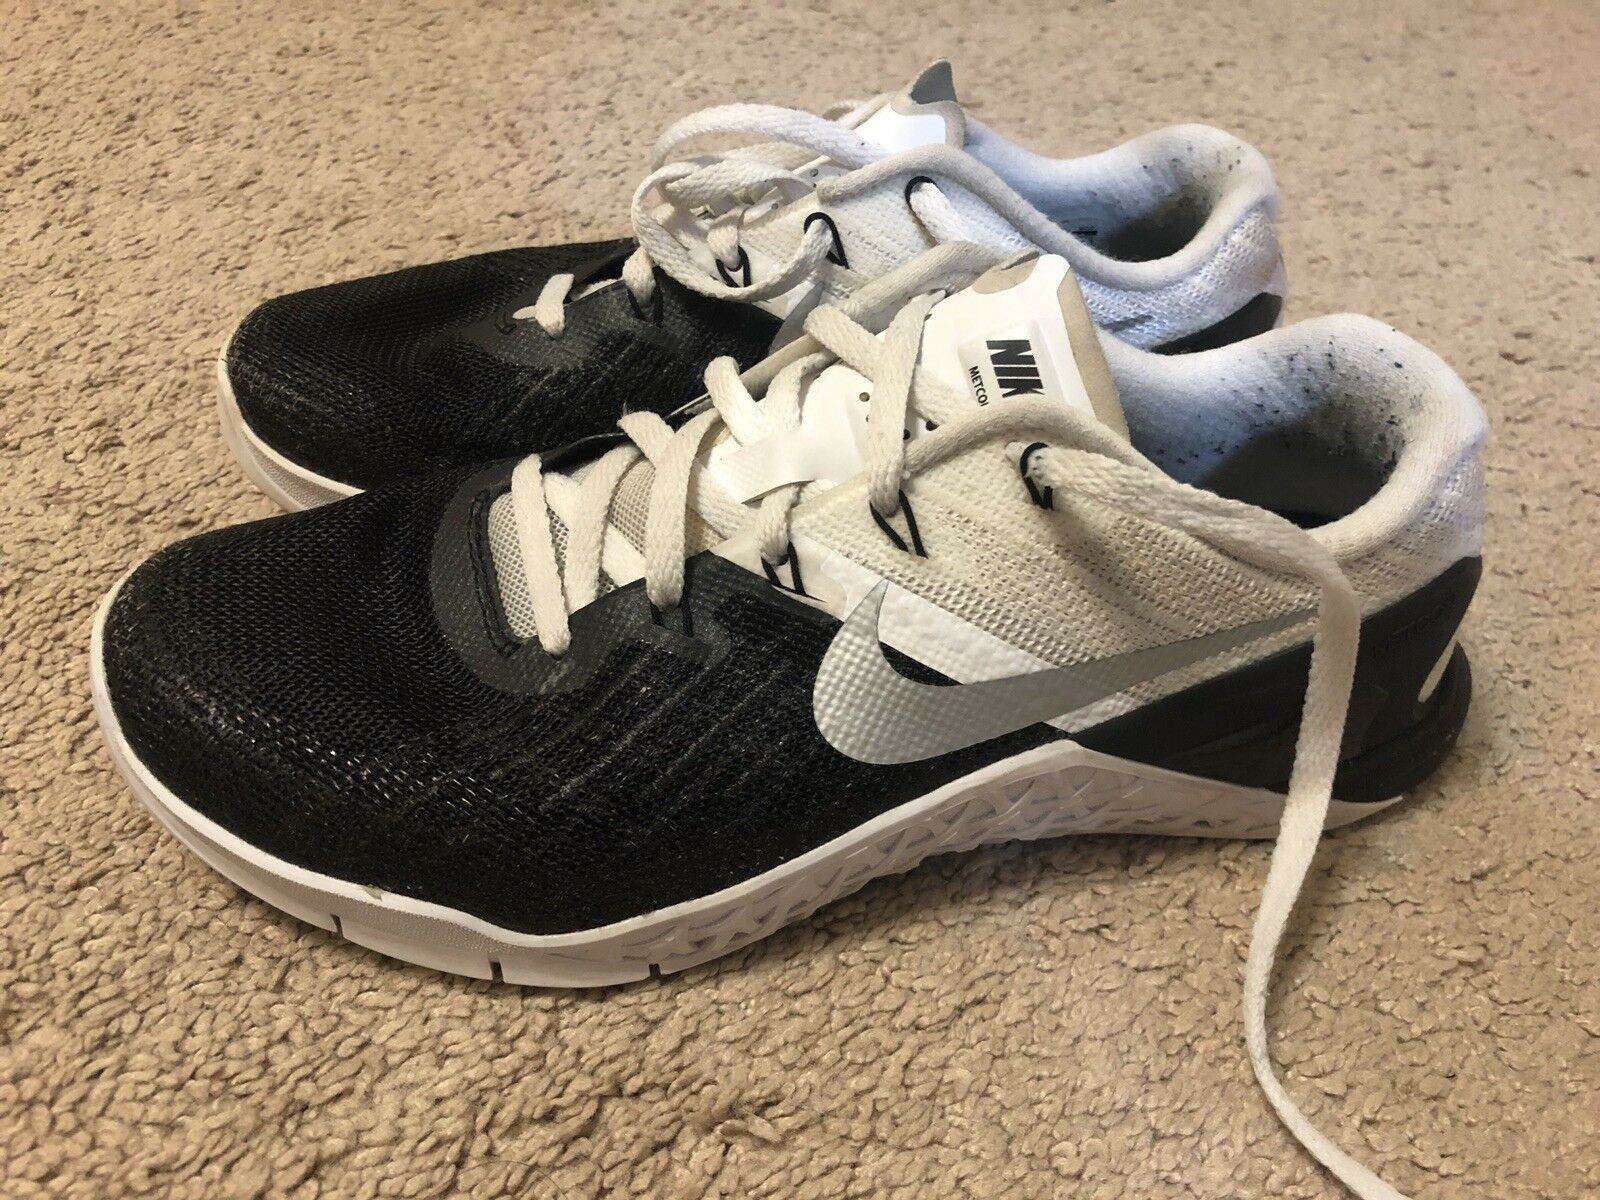 Nike Metcon 3 Men 6.5 Women 7.5 Black And White with box The latest discount shoes for men and women